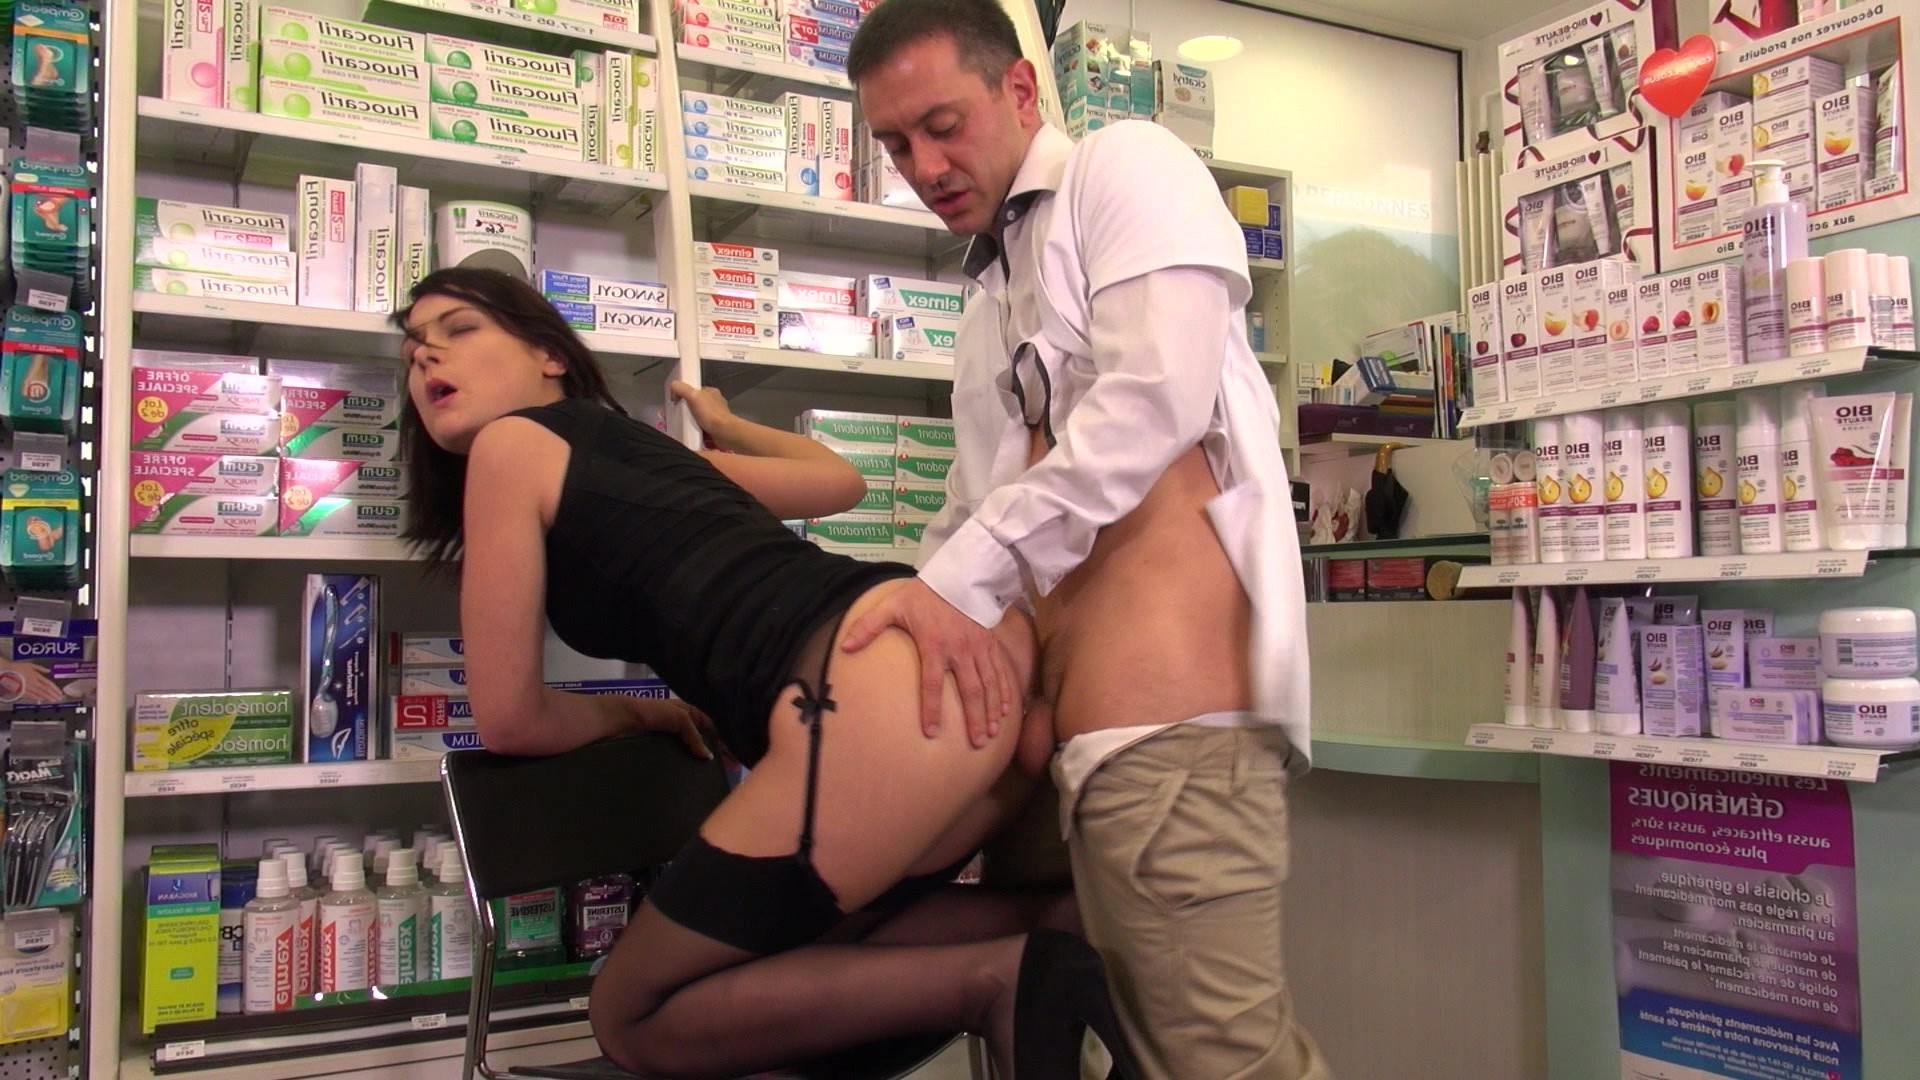 Celebrity pharmacist threatens to harm himself following news of his controversial dating life